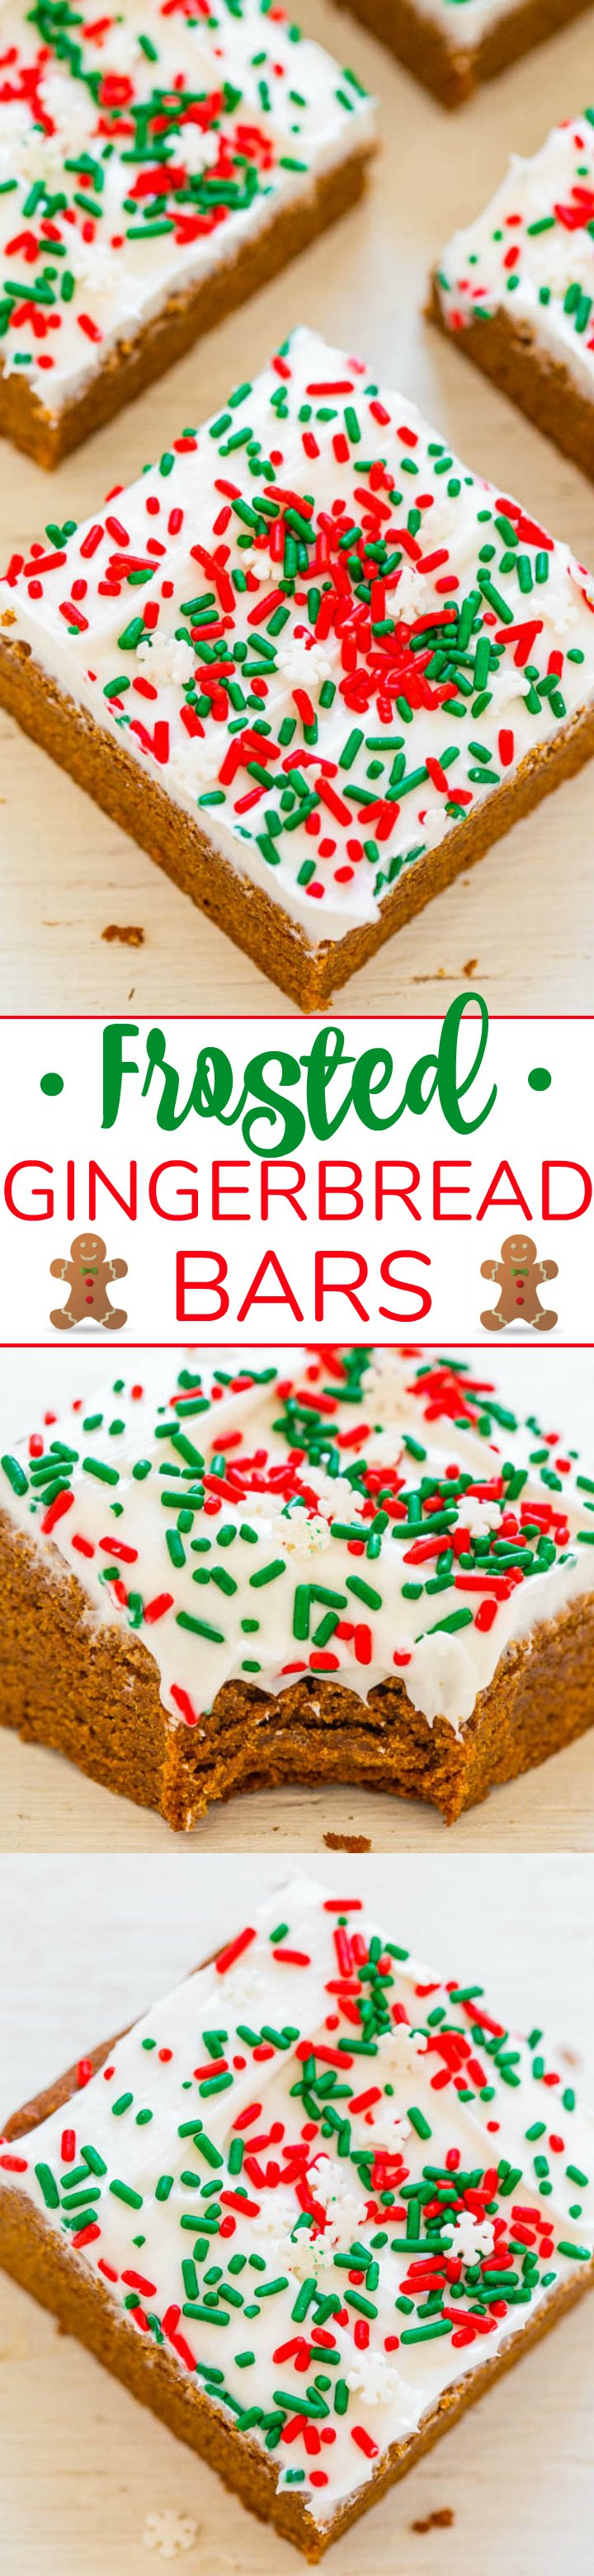 Gingerbread Bars with Cream Cheese Frosting - Gingerbread bars are so much FASTER AND EASIER than making gingerbread cookies!! The sprinkles and tangy cream cheese frosting will put everyone in a festive mood!!